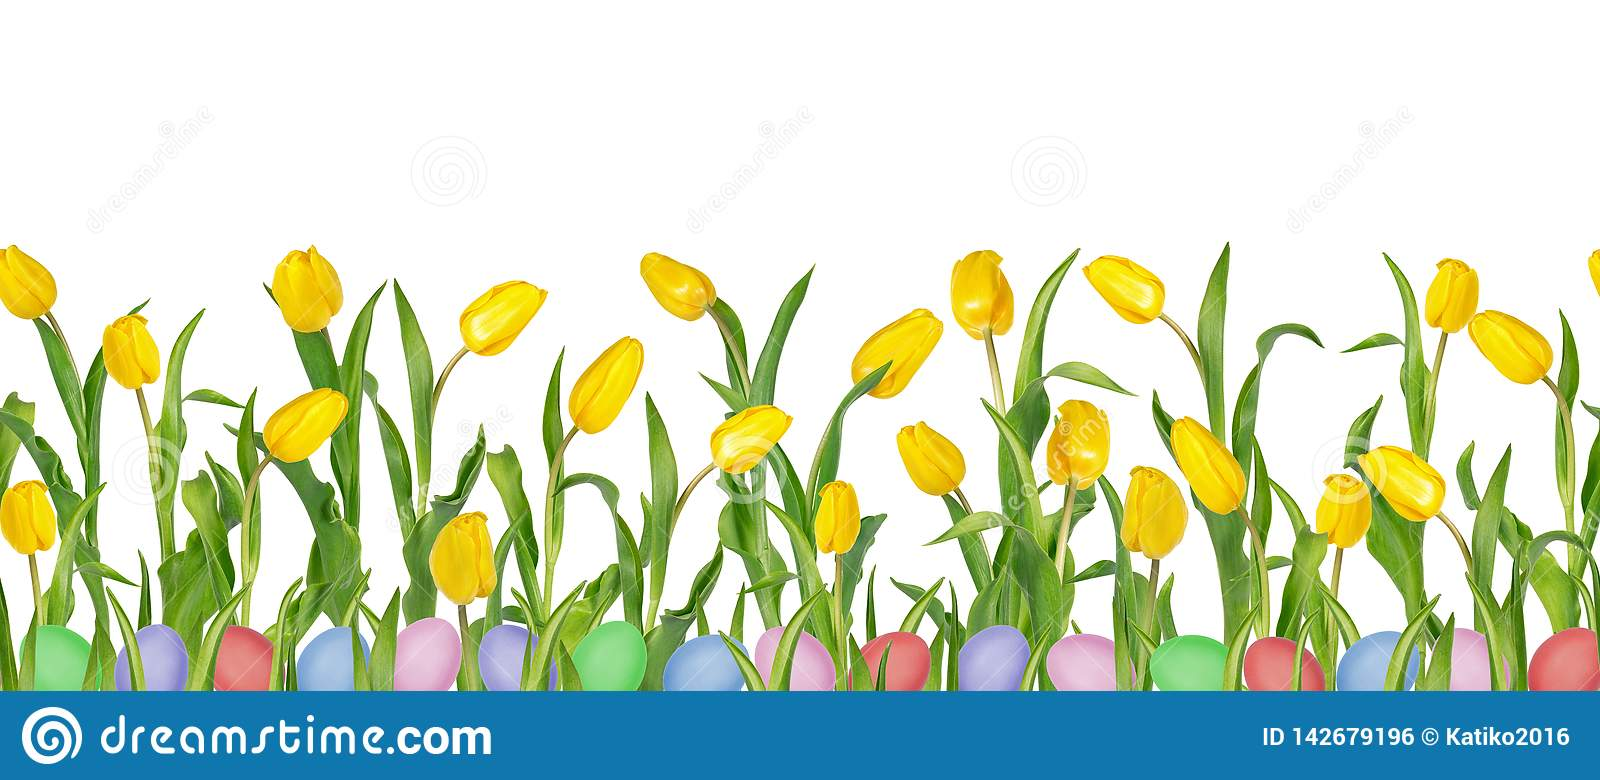 Beautiful vivid yellow tulips on long stems with green leaves and colorful Easter eggs in seamless pattern.